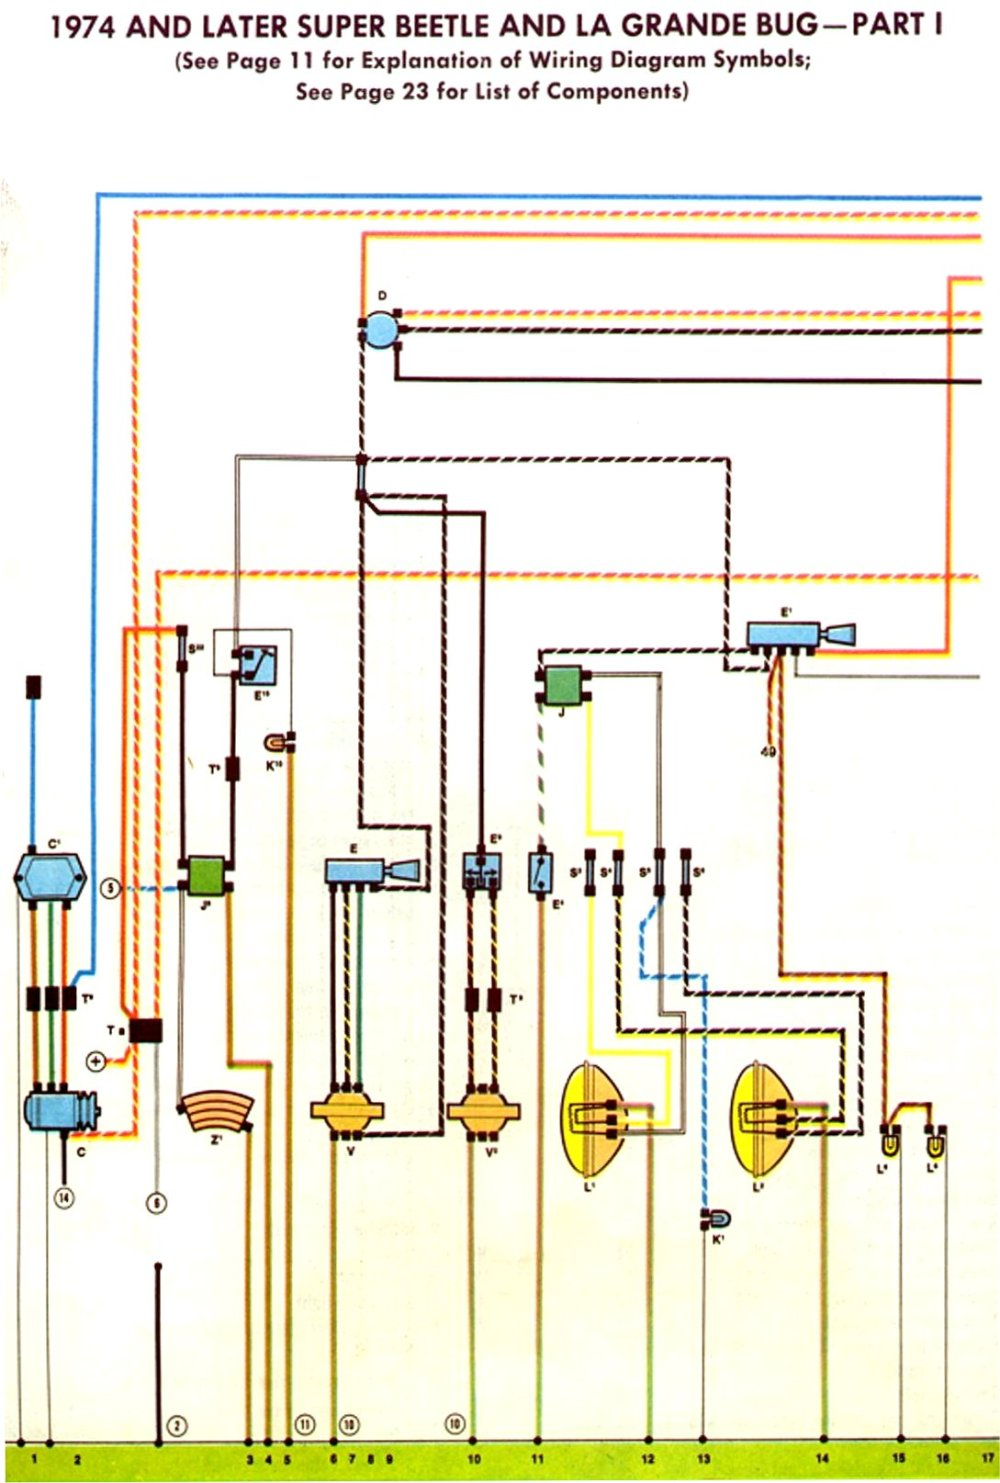 medium resolution of 1974 75 super beetle wiring diagram thegoldenbug com rh thegoldenbug com 74 super beetle alternator wiring connection 77 beetle fuse box wiring diagram